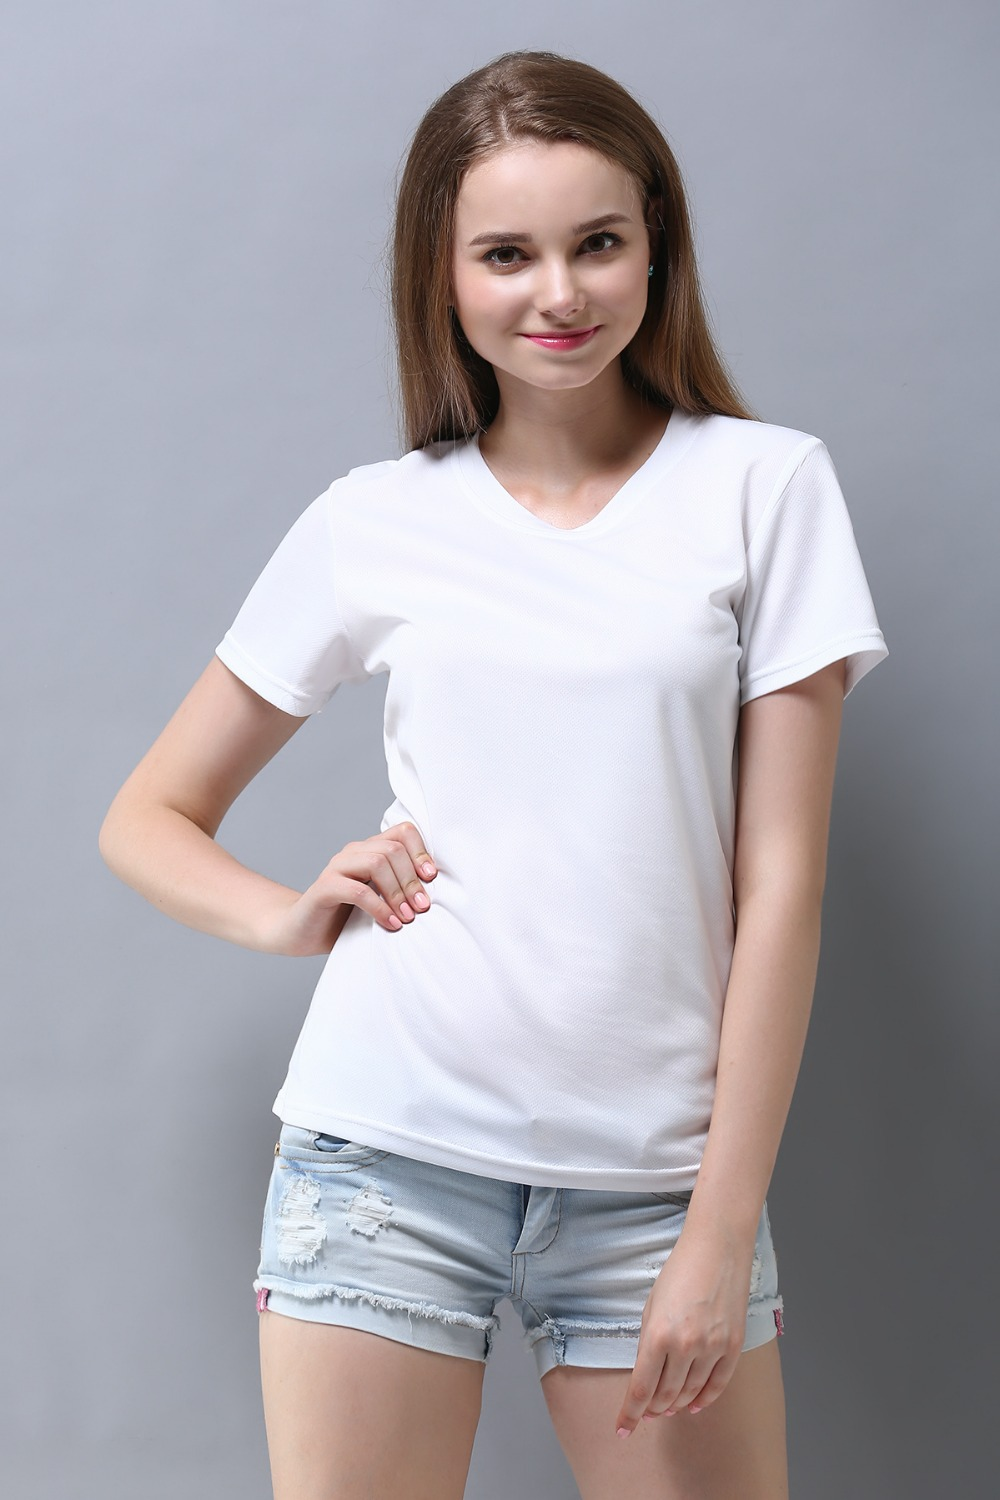 Ladies t shirts for sale quality t shirt clearance for Plain girls t shirts